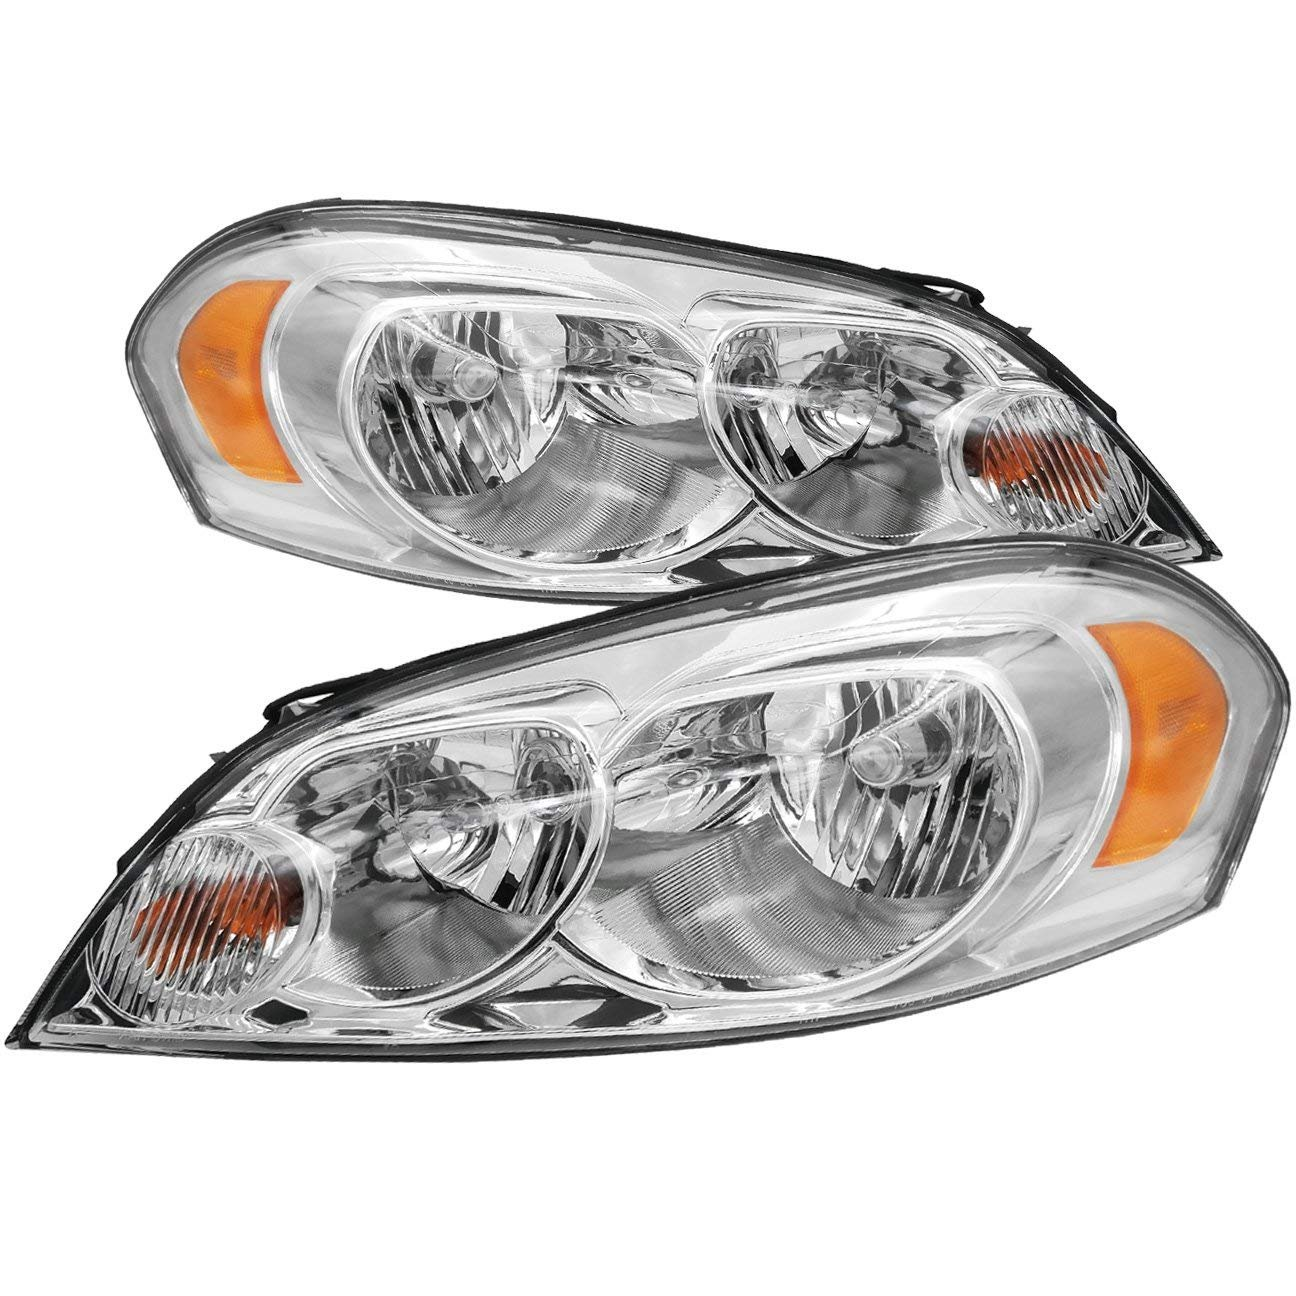 Chevy Impala/Monte Carlo OE Replacement Chrome Bezel Headlights Driver/Passenger Head Lamps Pair New .